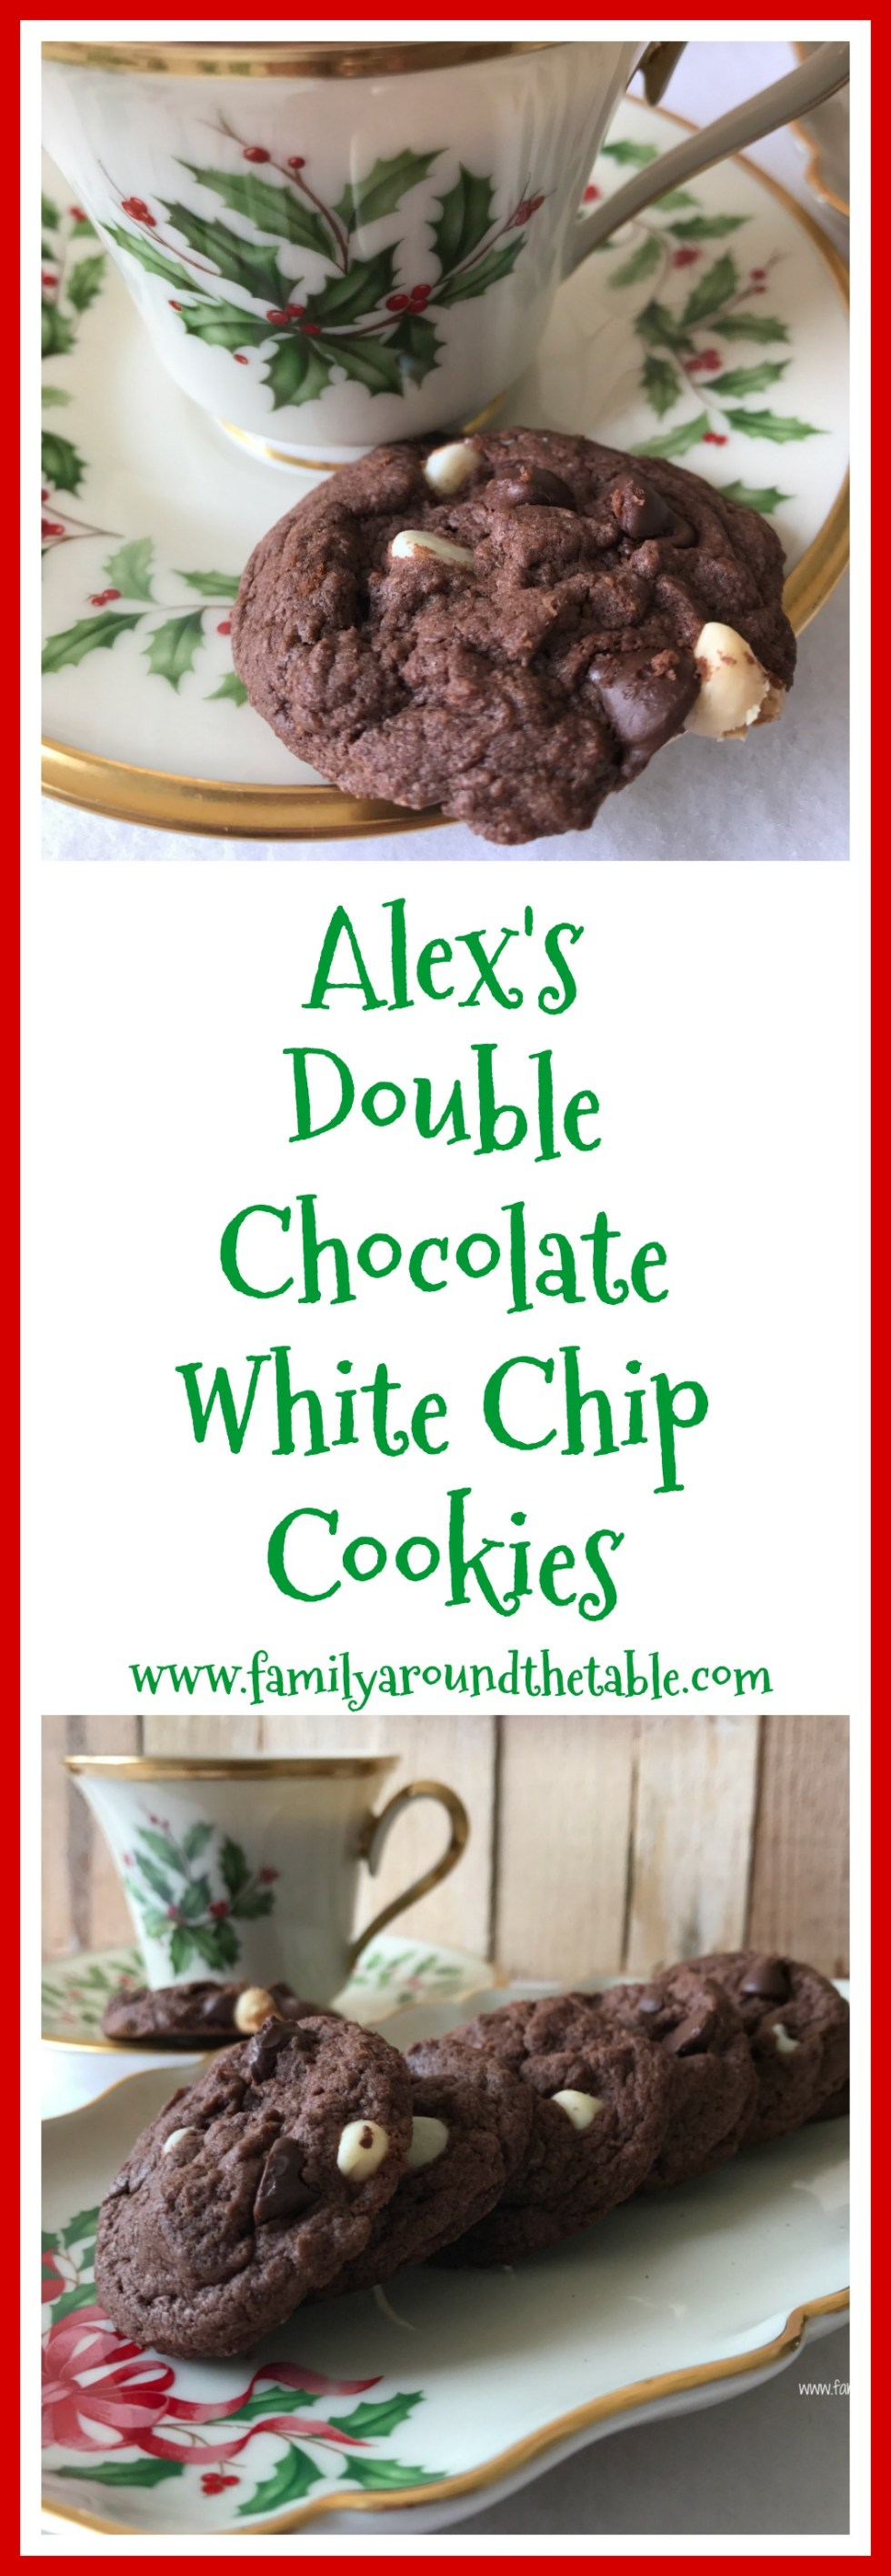 Alex's double chocolate white chip cookies.